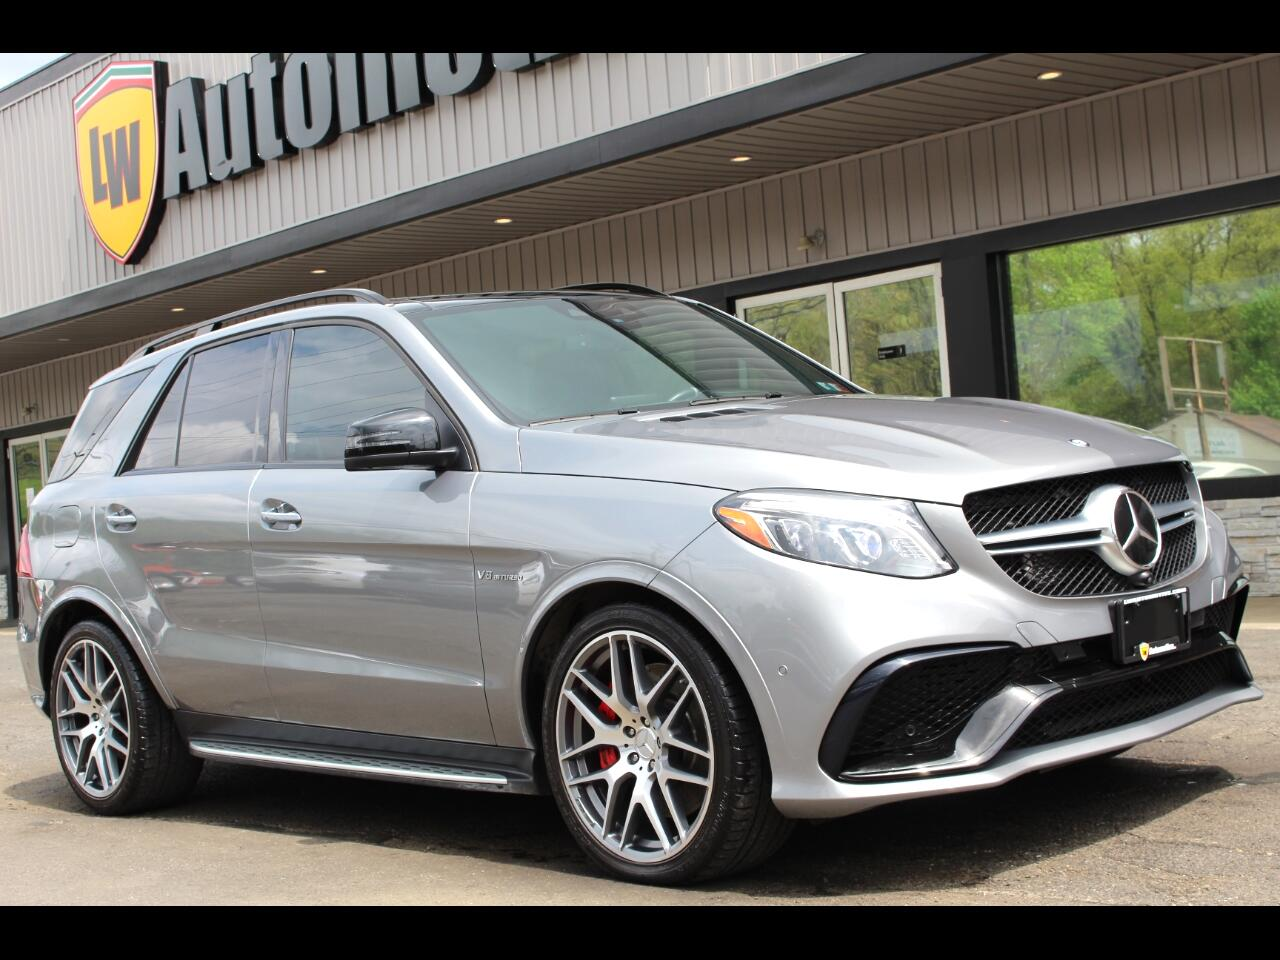 2016 Mercedes-Benz GLE Class AMG GLE63 4MATIC